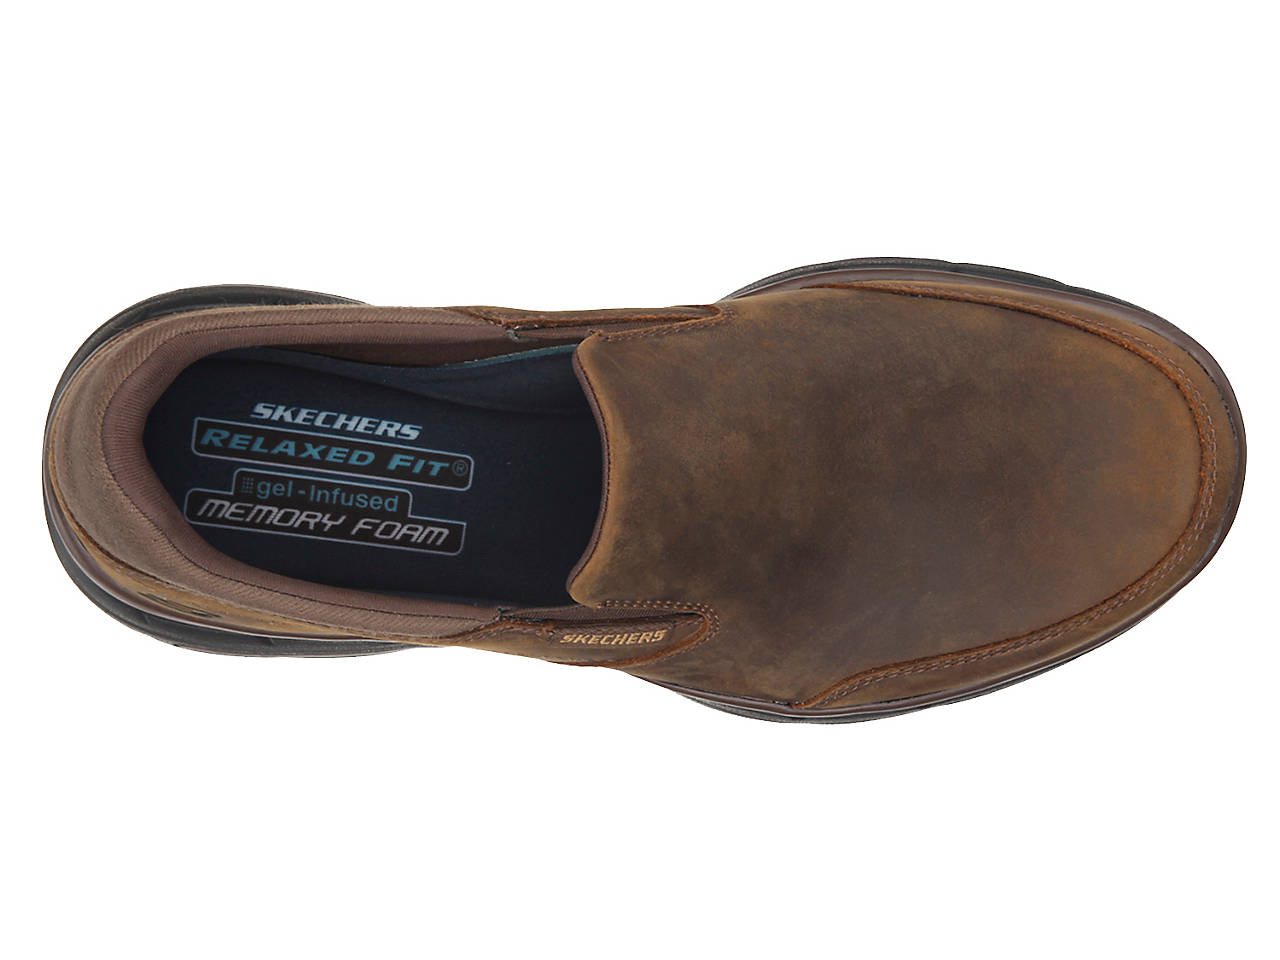 badfa64301a Skechers Relaxed Fit Glides Calculous Slip-On Men s Shoes